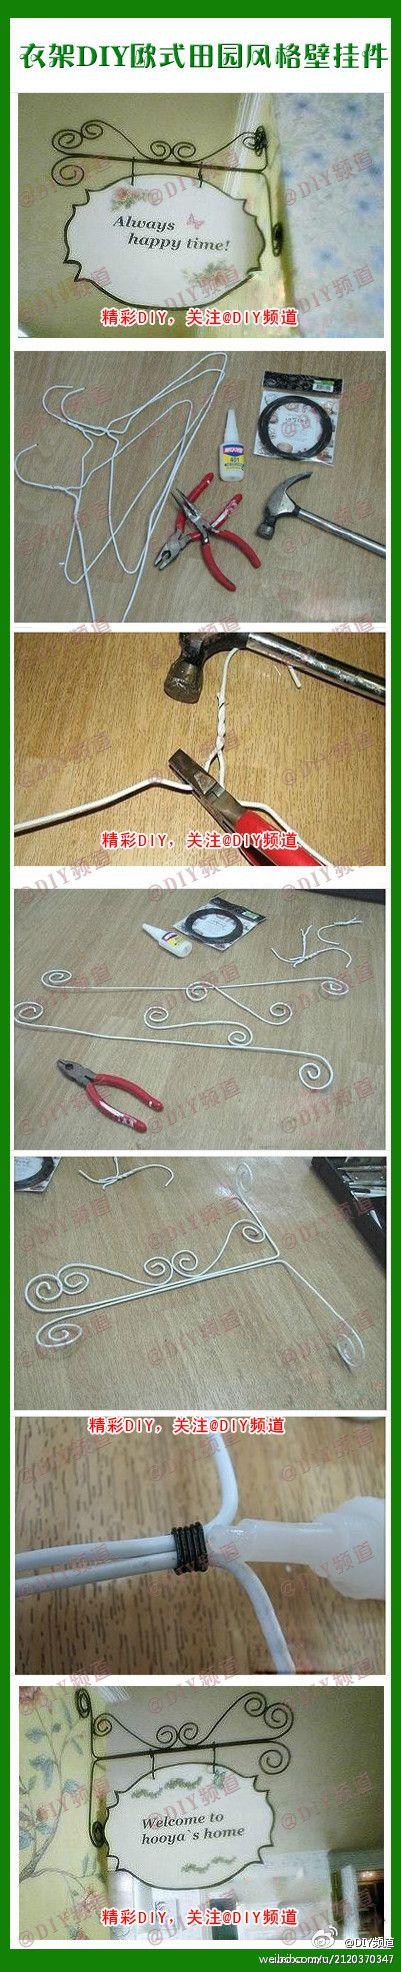 cool way to use some lay around hangers :) I can't read a word it says, but you can get the general idea from the pictures